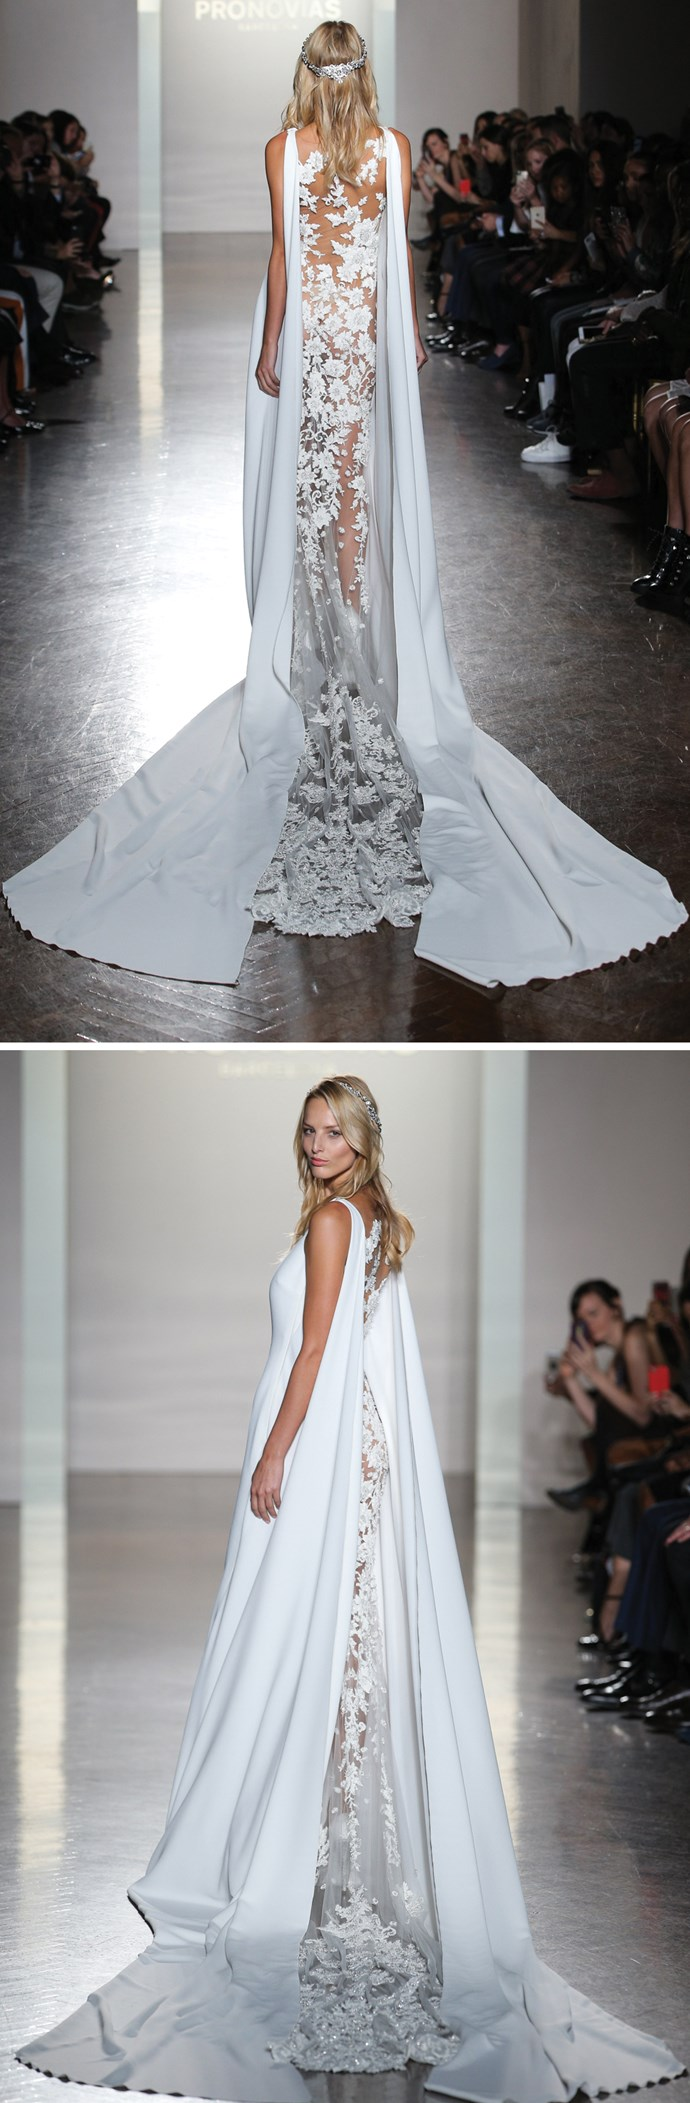 **9. Contrasting mixed materials. ** As seen at Pronovias and Vera Wang.